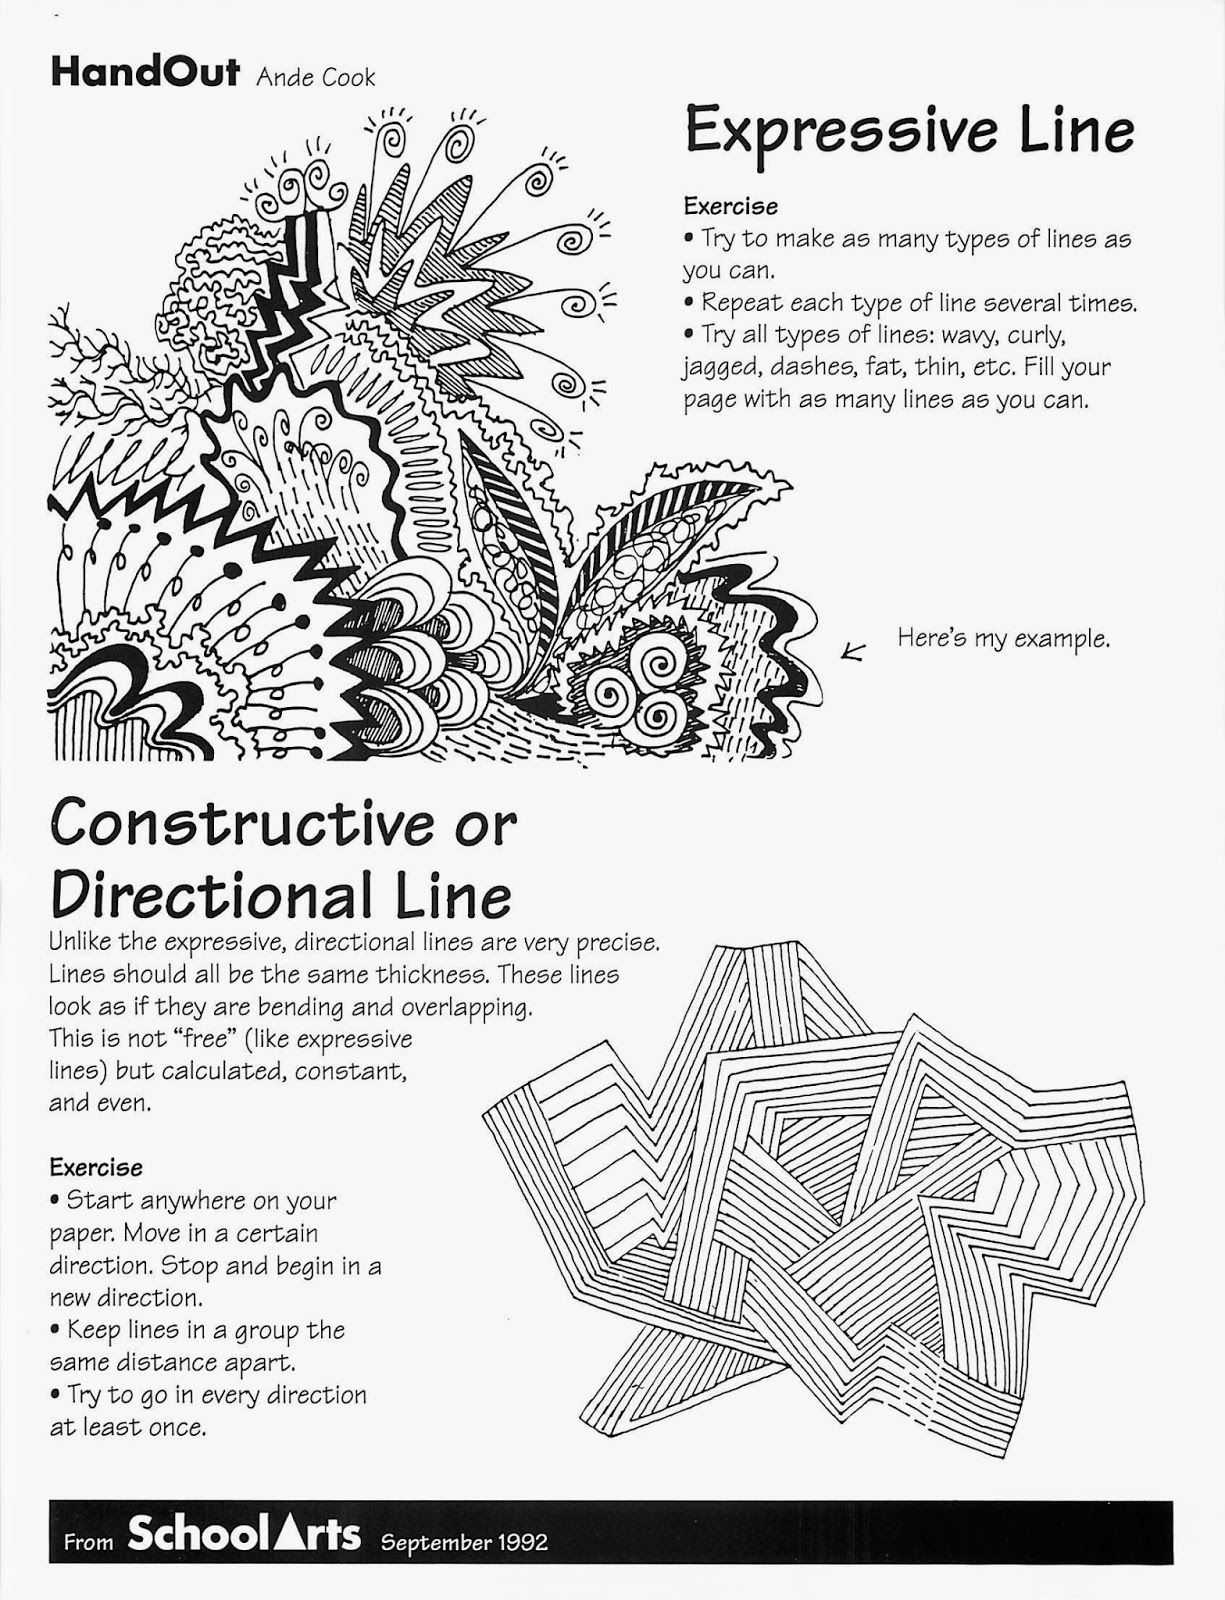 Free Ande Cook S Expressive And Directional Line Handout